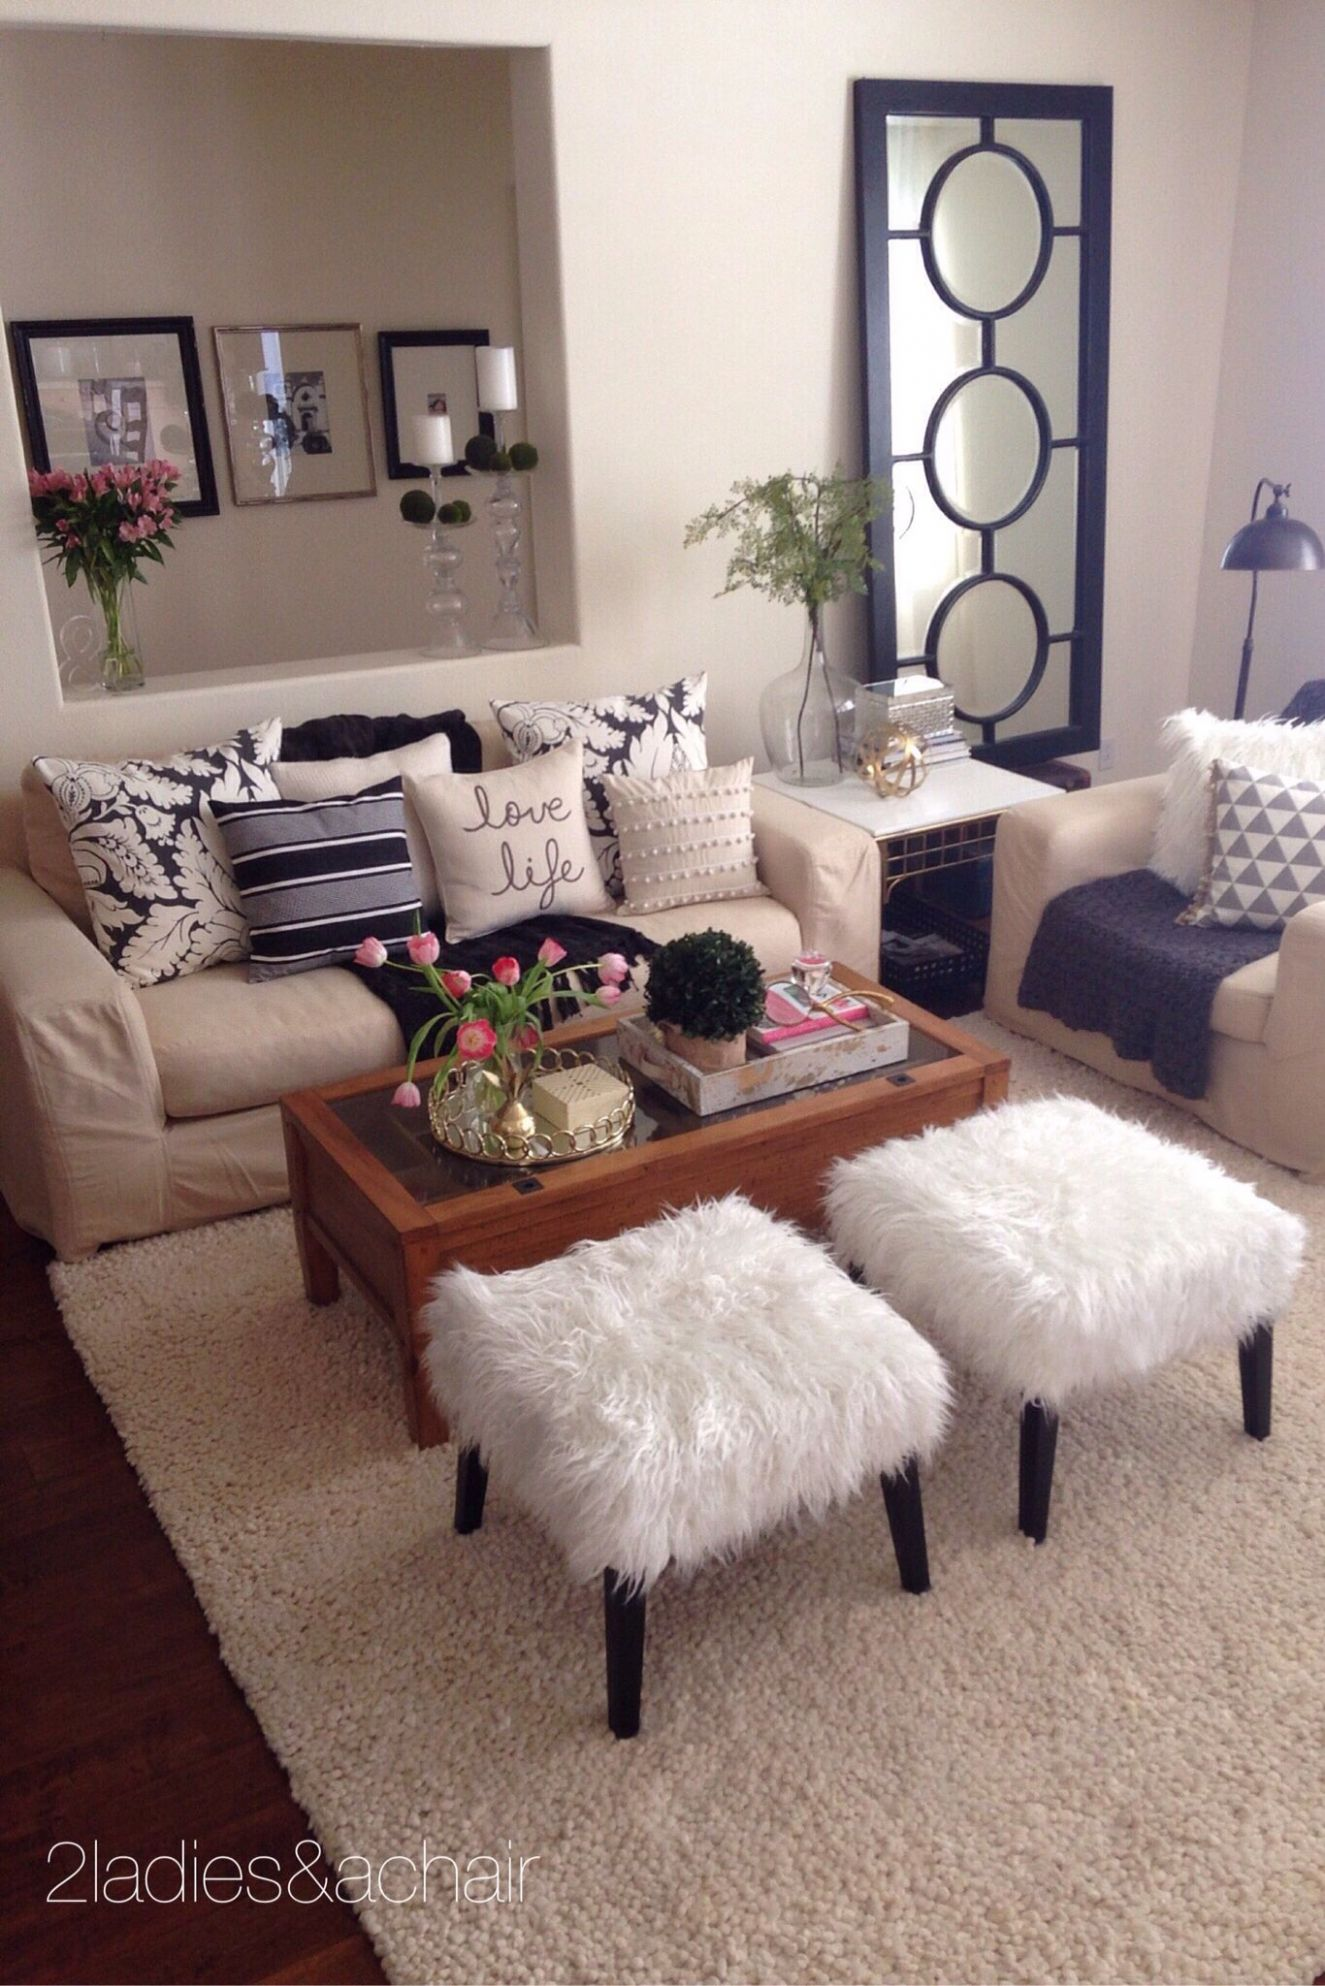 11 Ladies Spring Home Tour: Joan's Home (With images) | Beige ...